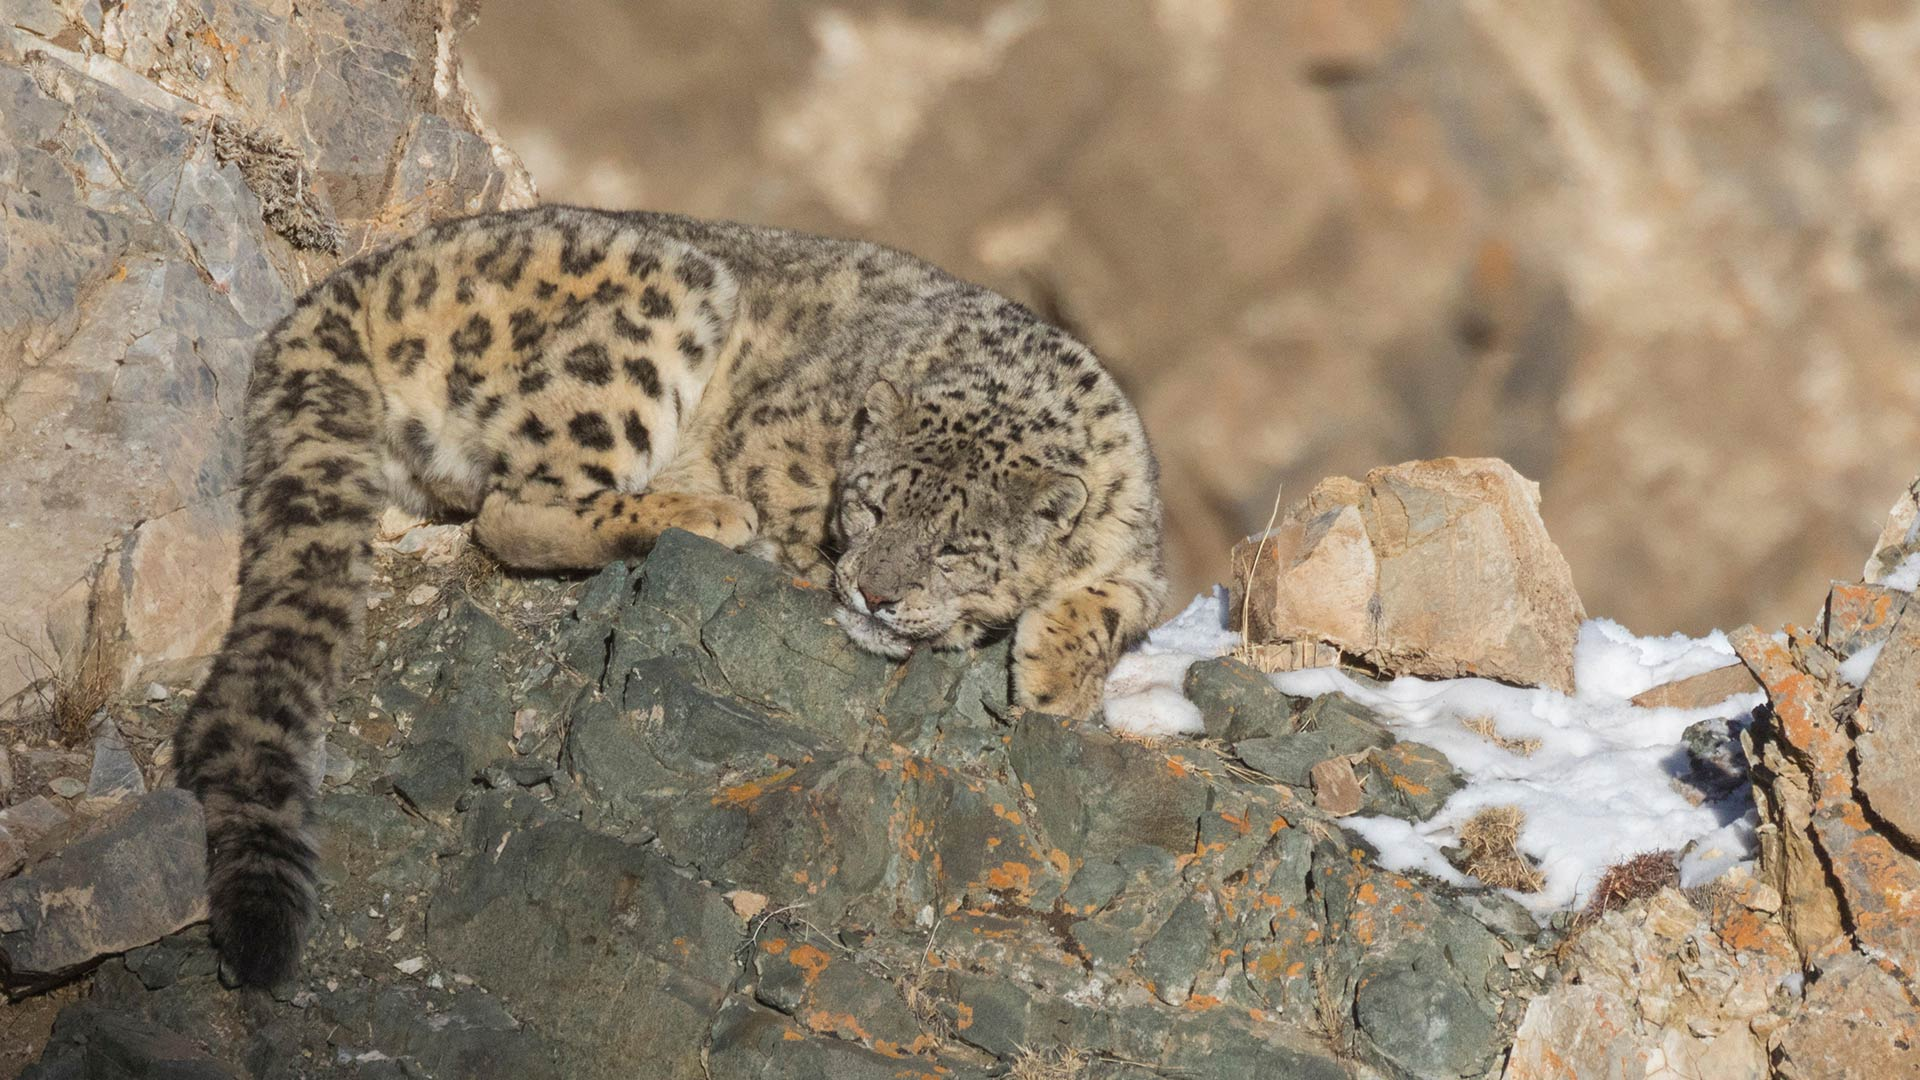 Snow leopard on rocks in the Altai Mountains, Mongolia